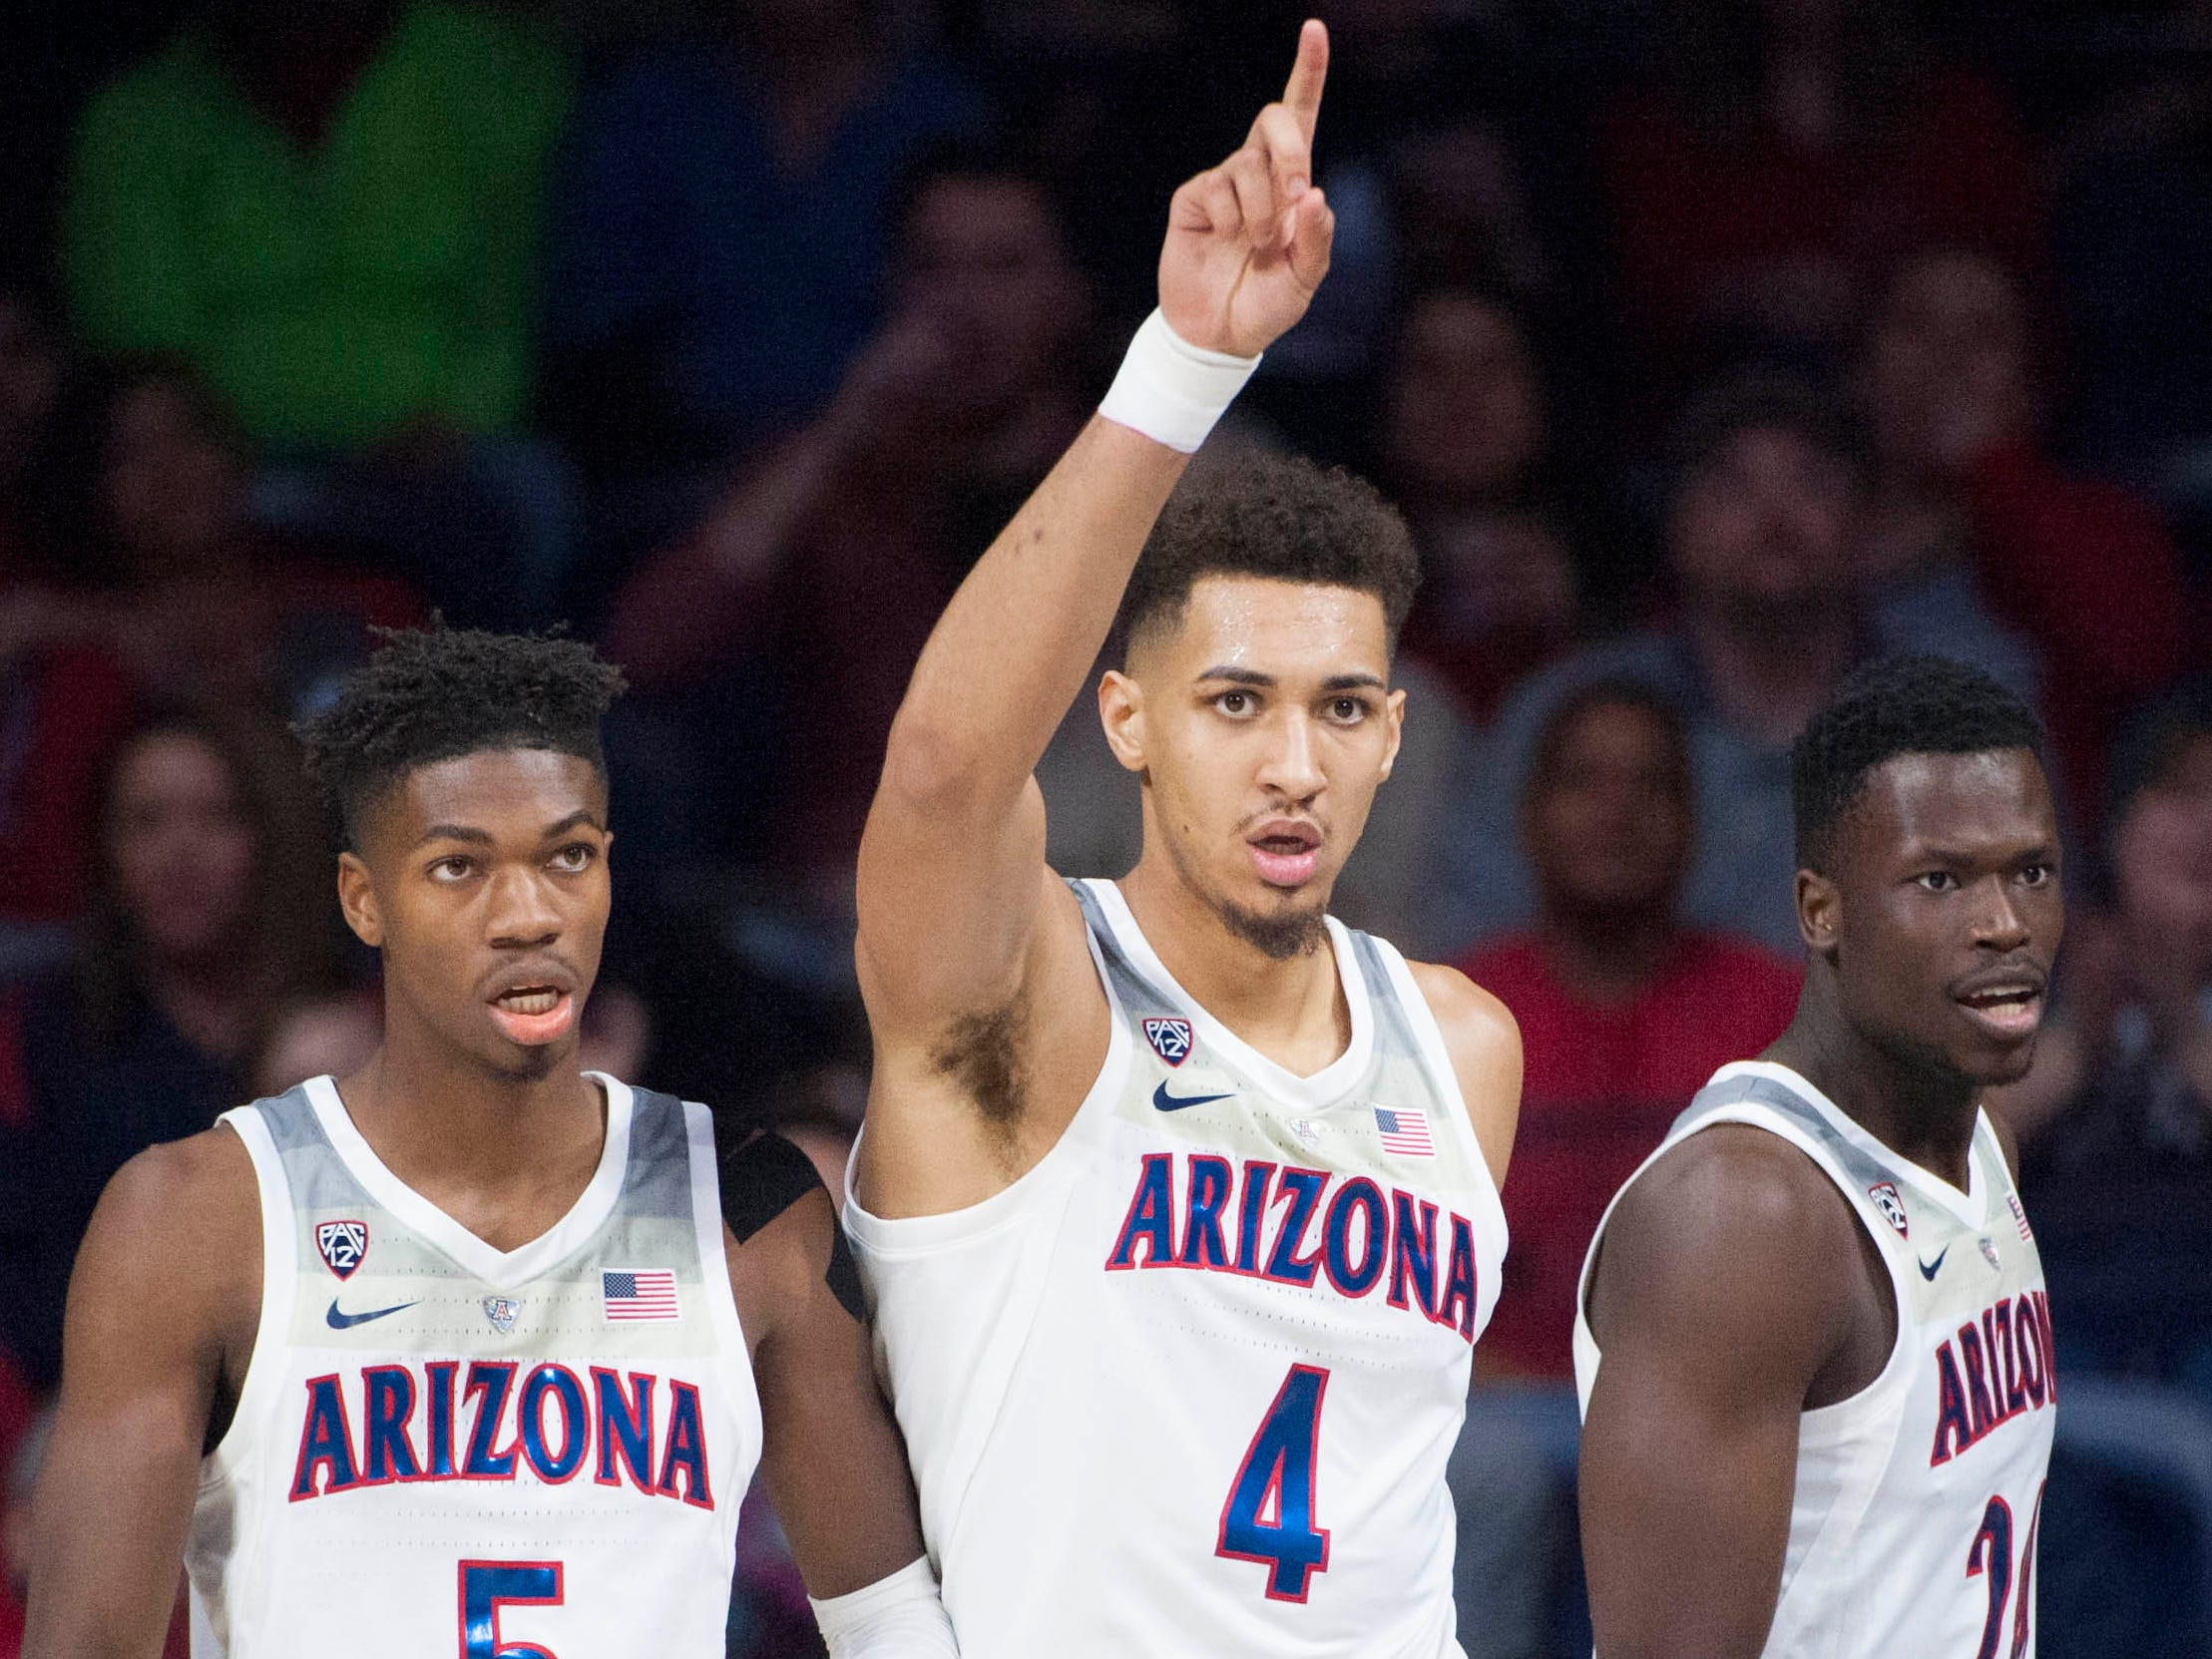 Dec 22, 2018; Tucson, AZ, USA; Arizona Wildcats center Chase Jeter (4) celebrates next to guard Brandon Randolph (5) (left) and guard Emmanuel Akot (24) (right) after scoring against the UC Davis Aggies during the first half at McKale Center. Mandatory Credit: Casey Sapio-USA TODAY Sports